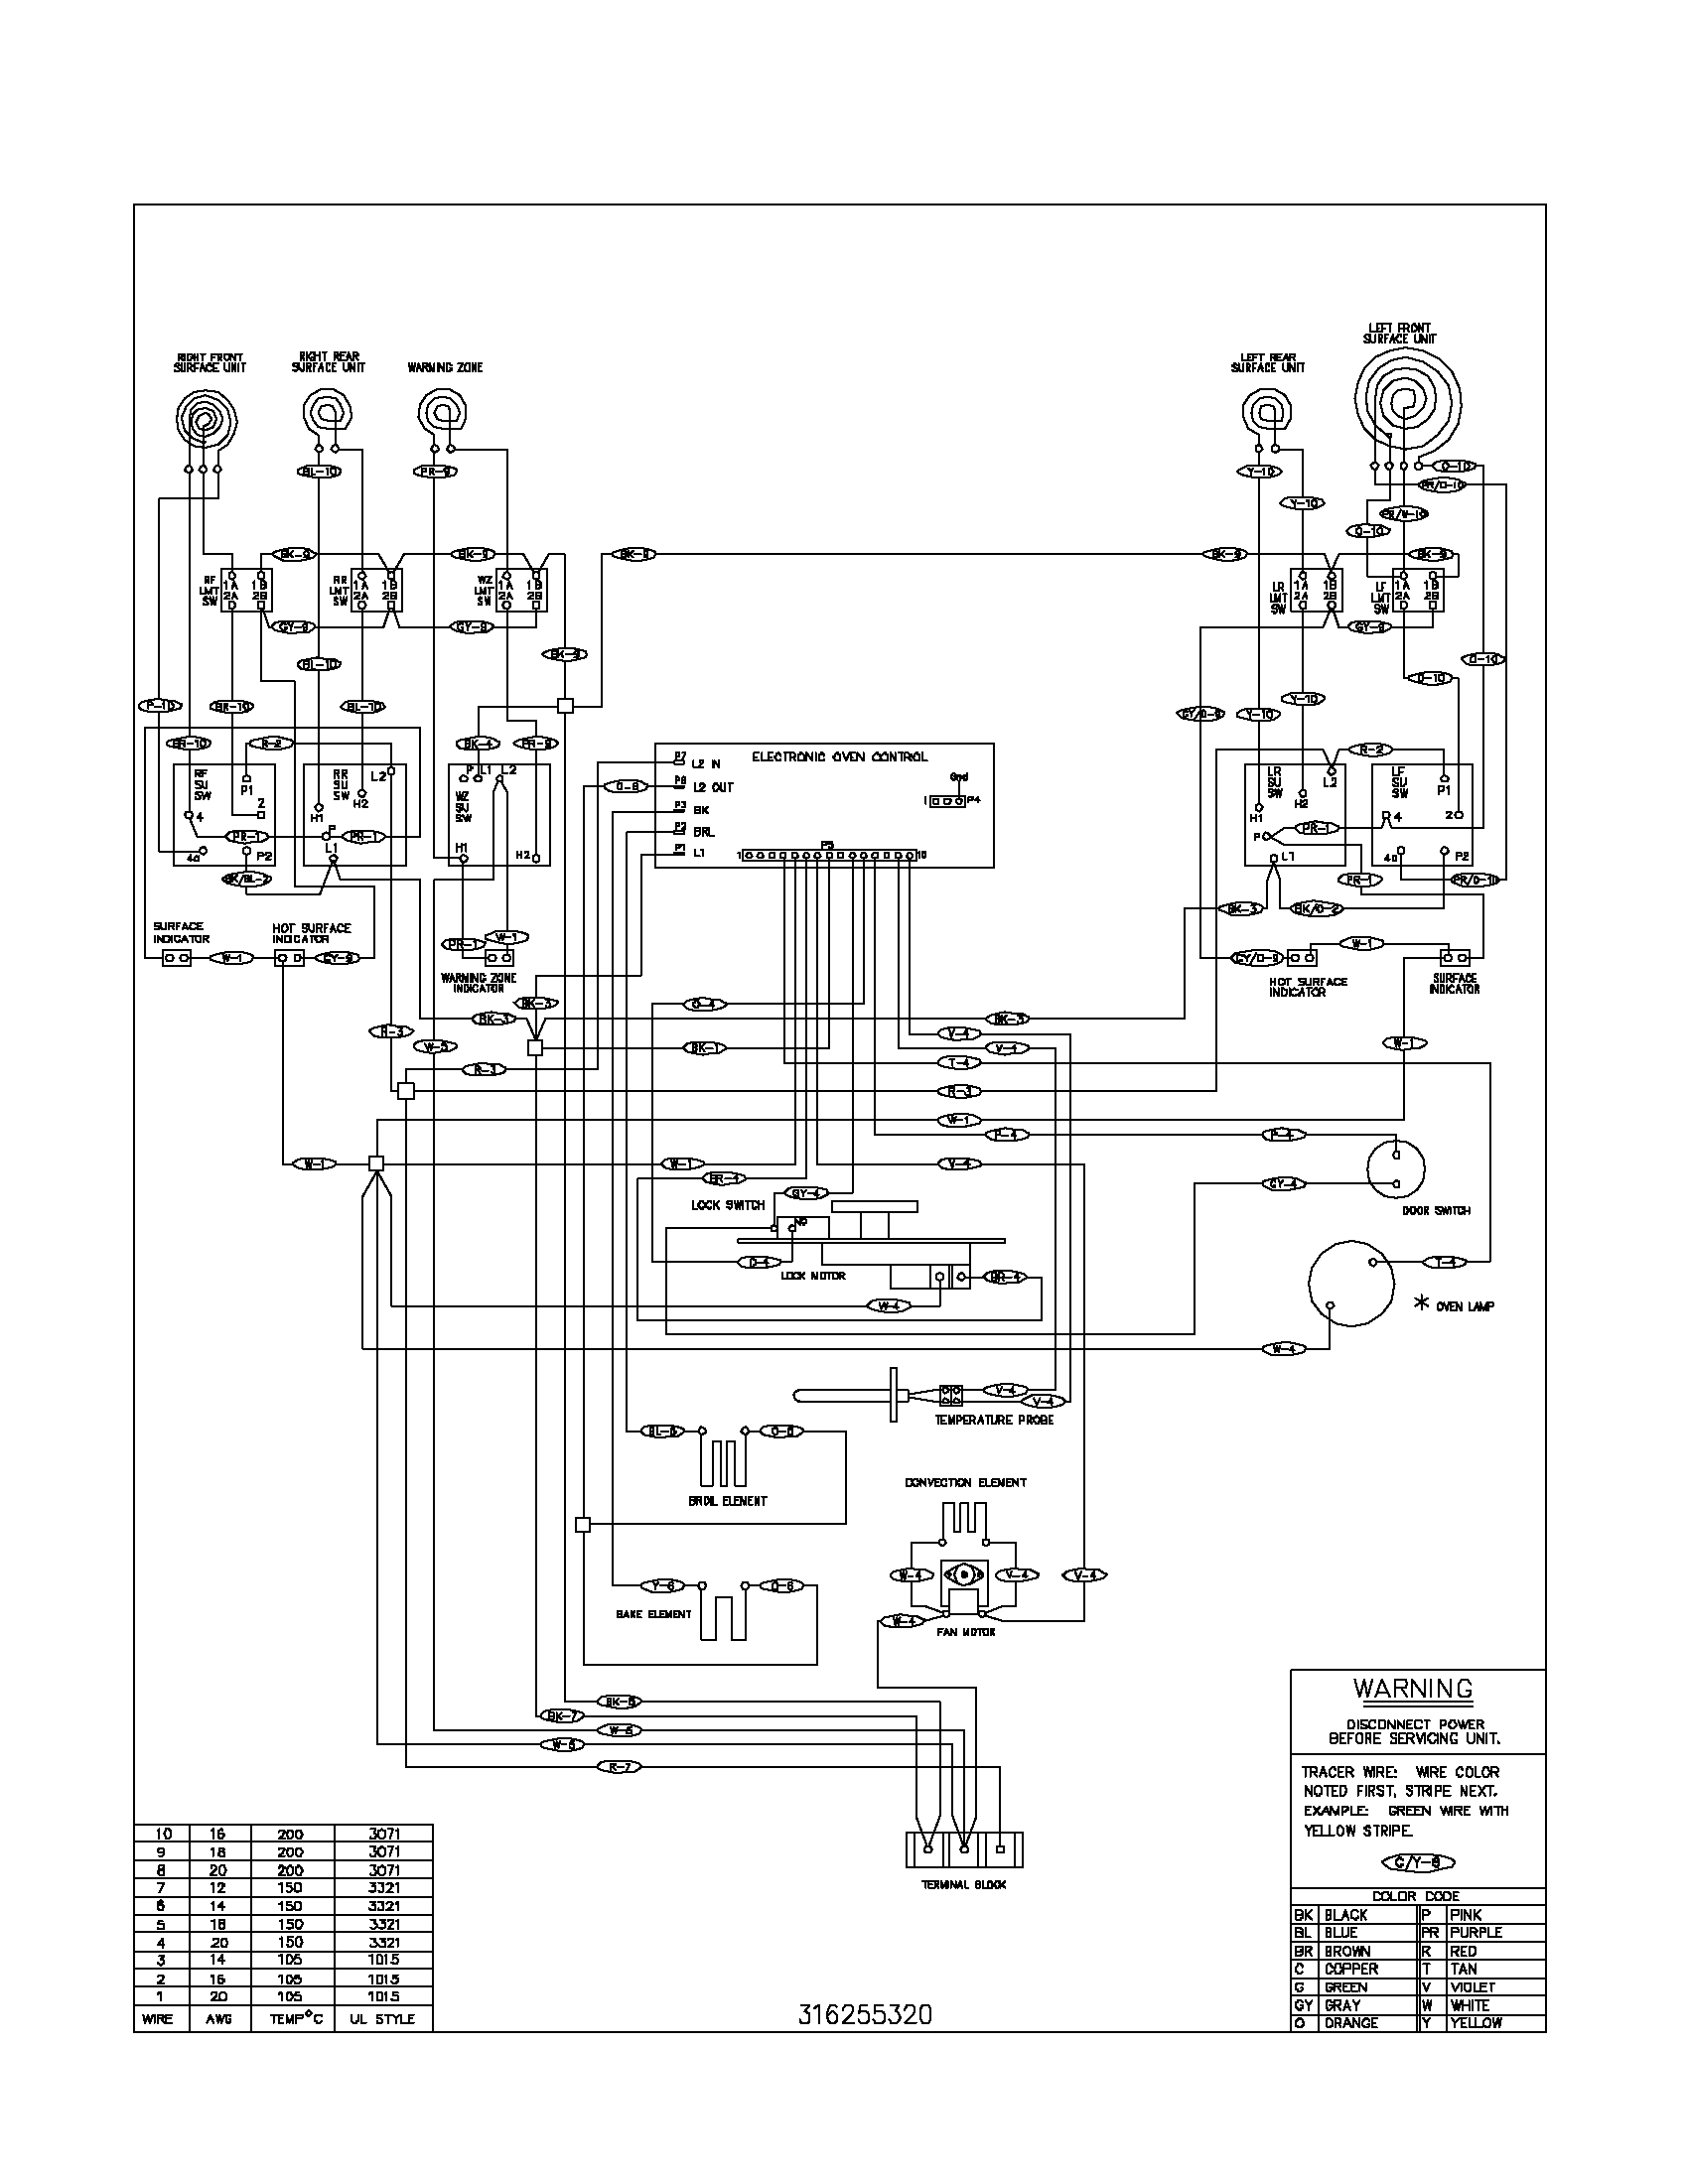 wiring diagram parts wiring diagram for whirlpool refrigerator efcaviation com wiring diagram of no-frost refrigerator at alyssarenee.co